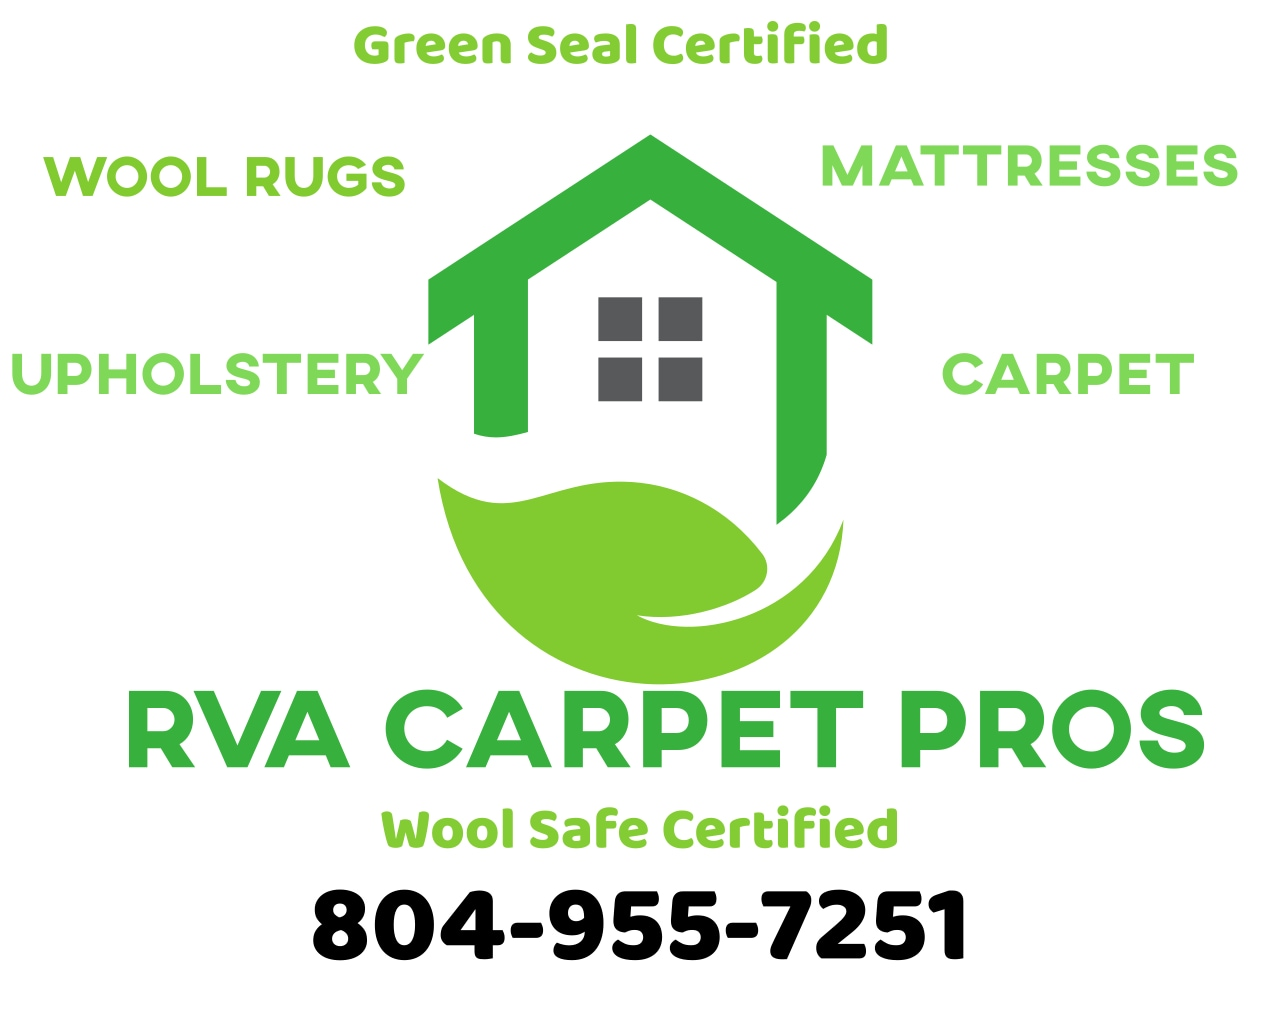 RVA Carpet Pros LLC